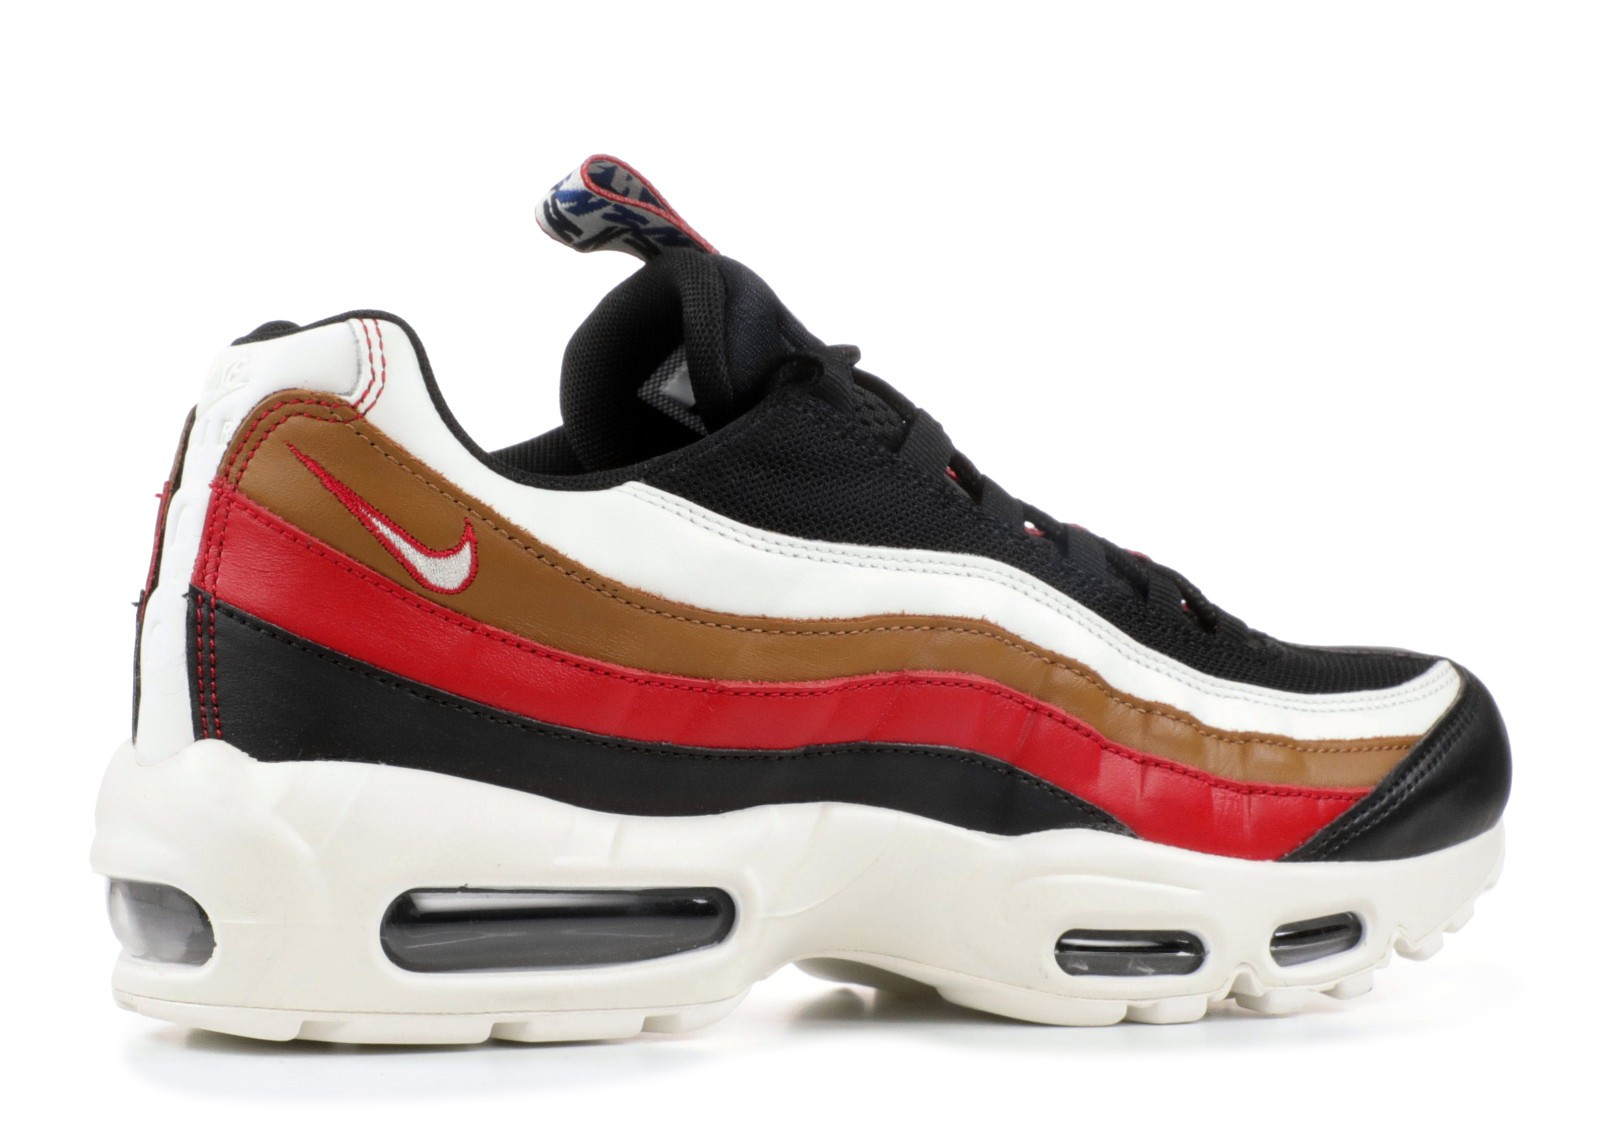 7d12ecda5b ... Nike Air Max 95 Tt Prm Pull Tab Brown Sail Gym Ale Black Red AJ4077- ...